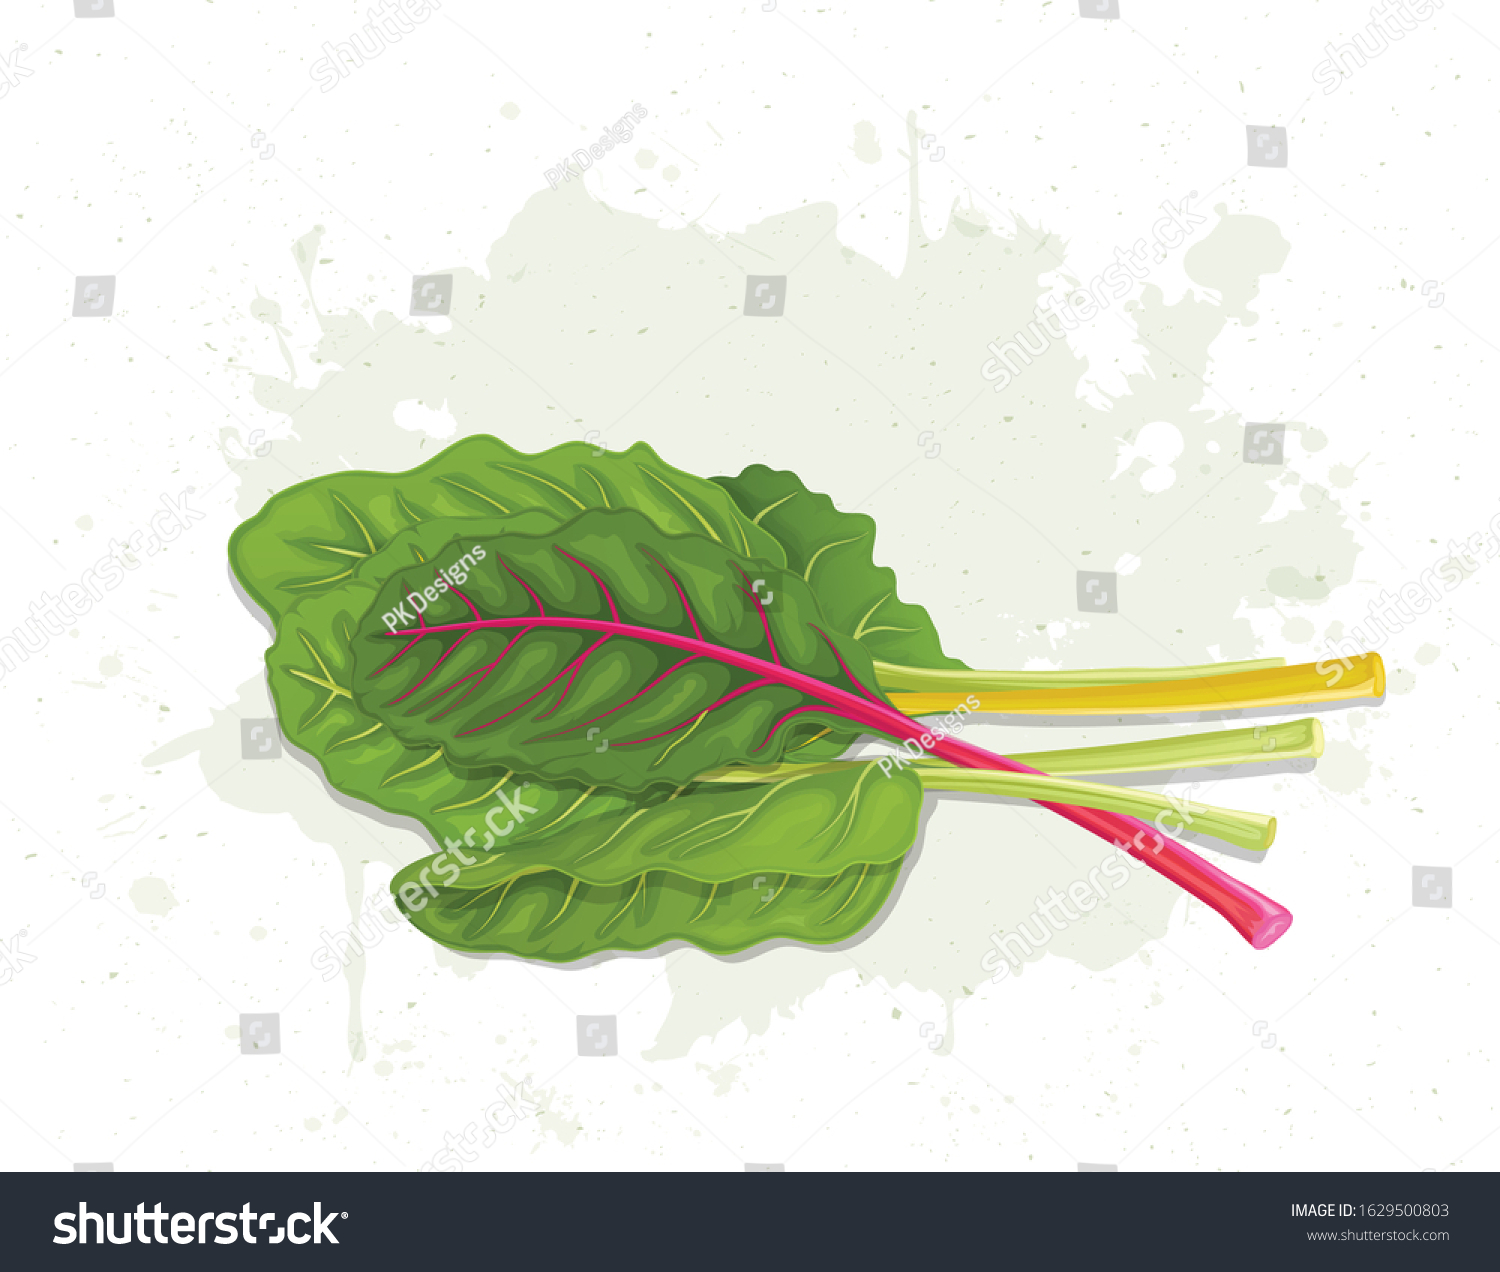 Swiss Chard Vector Illustration On White Stock Vector Royalty Free 1629500803